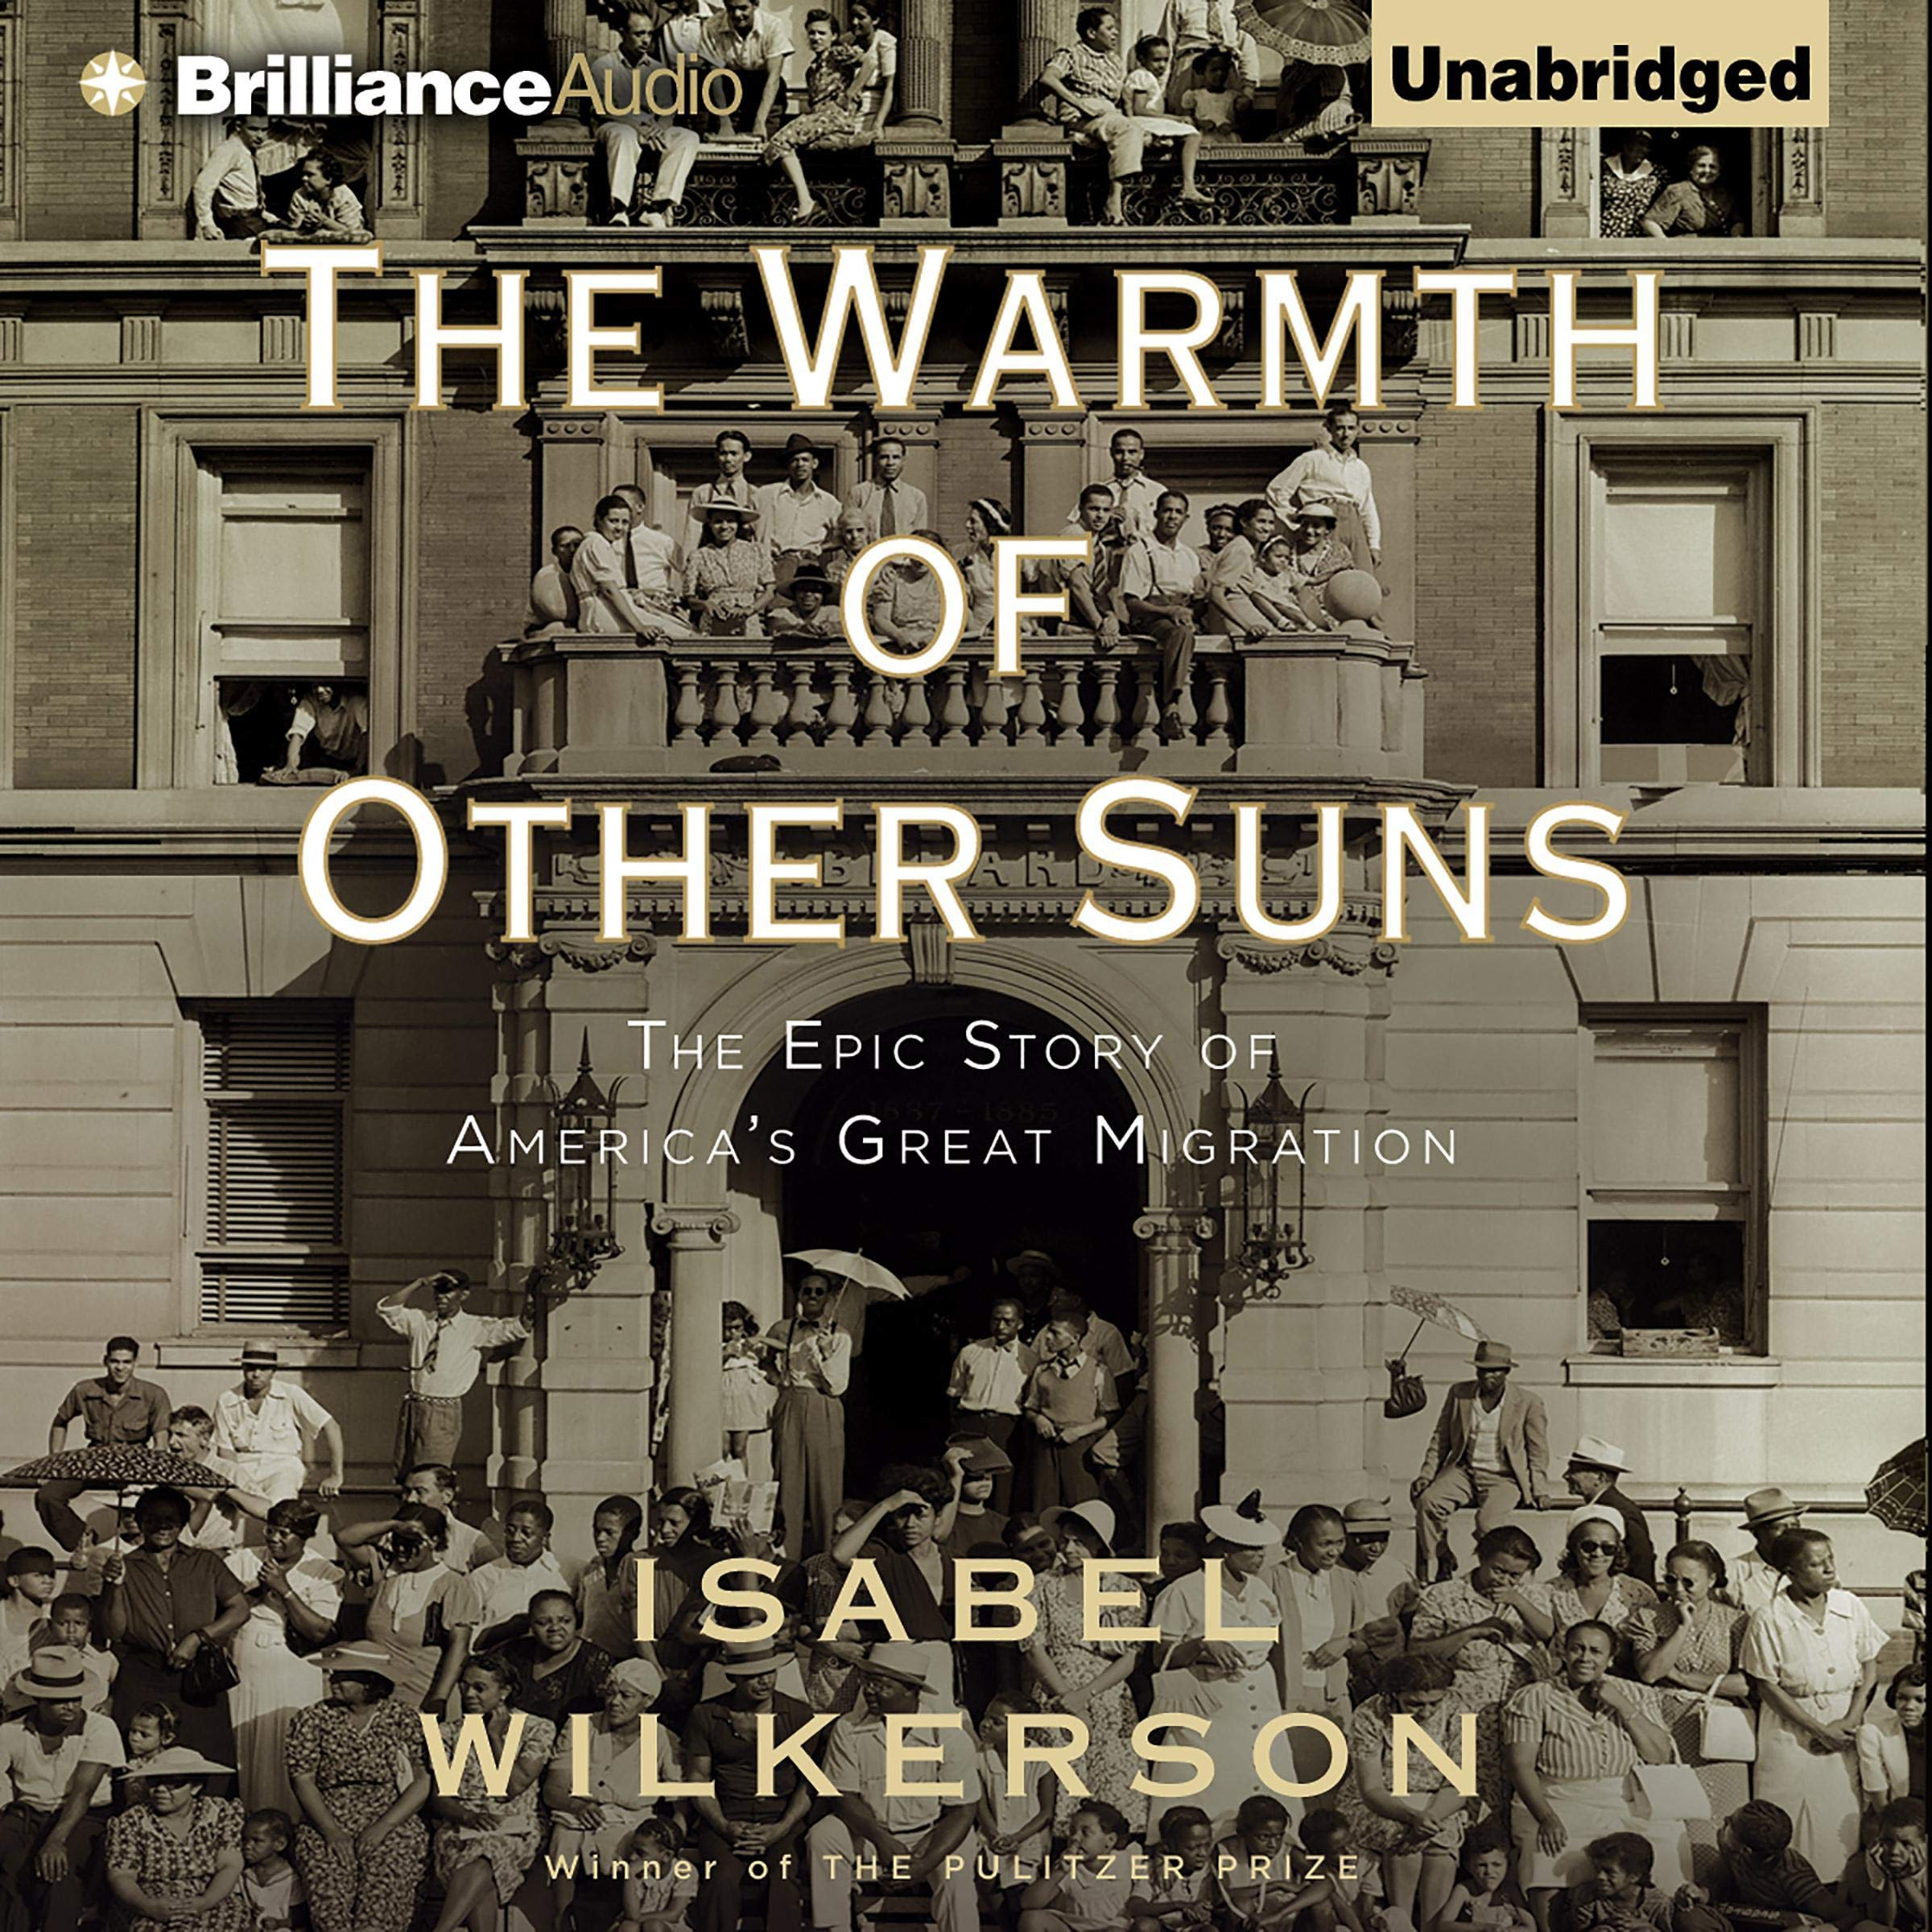 Image OfThe Warmth Of Other Suns: The Epic Story Of America's Great Migration